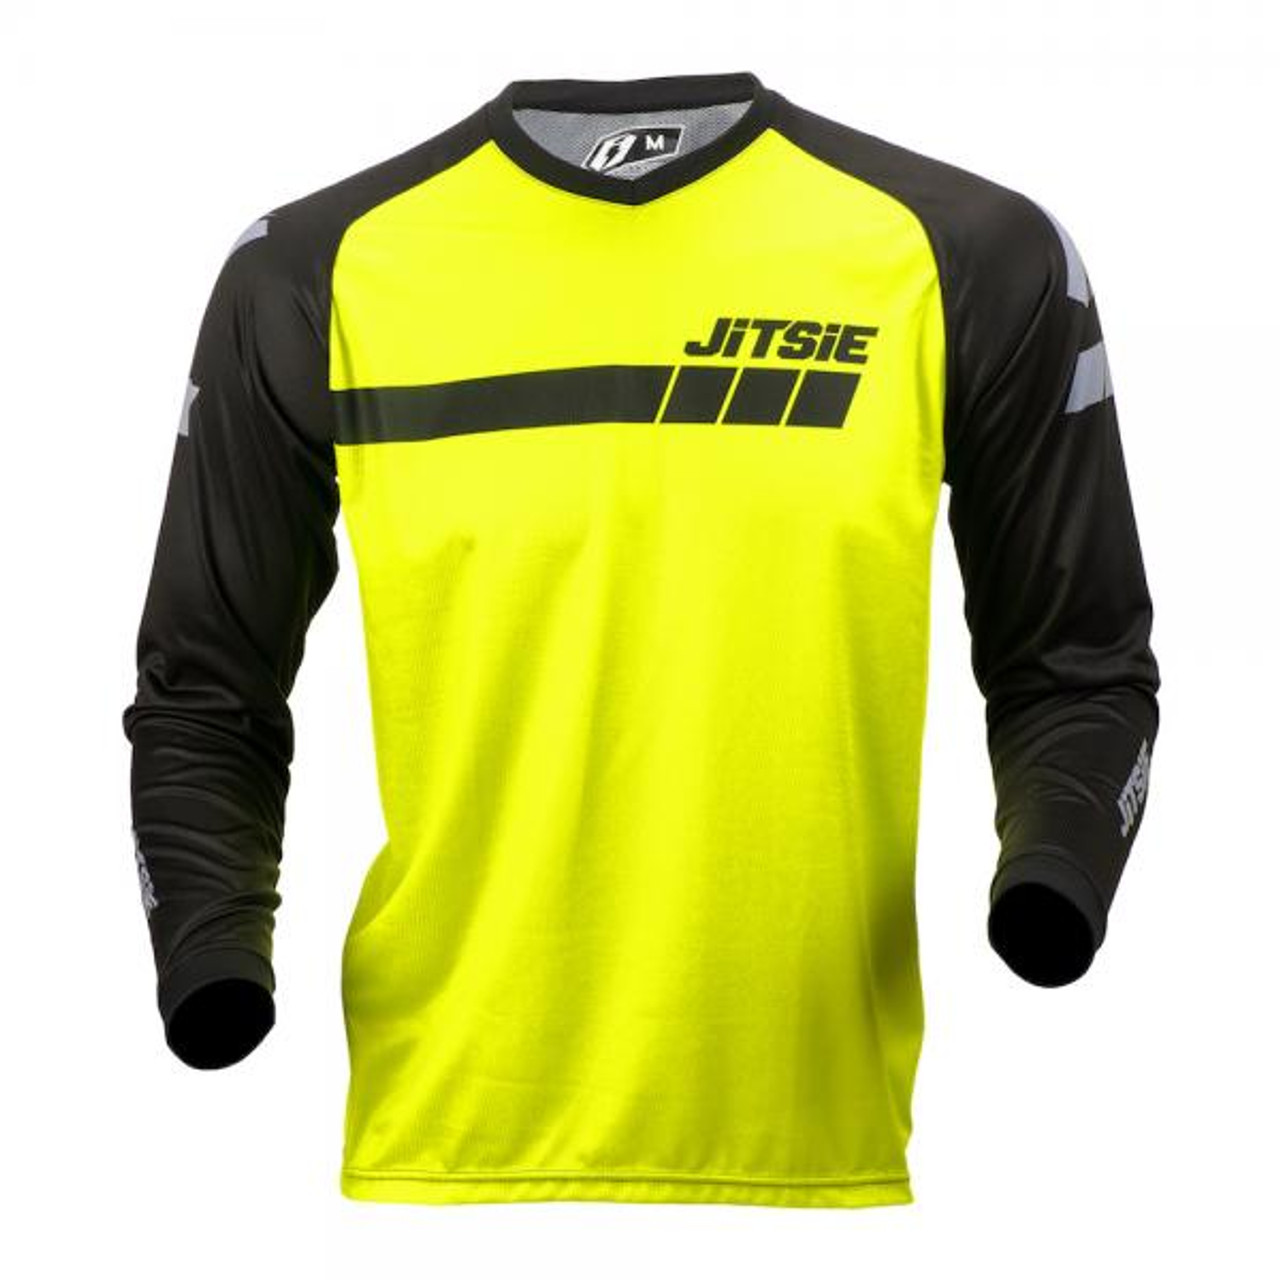 2019 Jersey L3 Triztan black/ fluo yellow